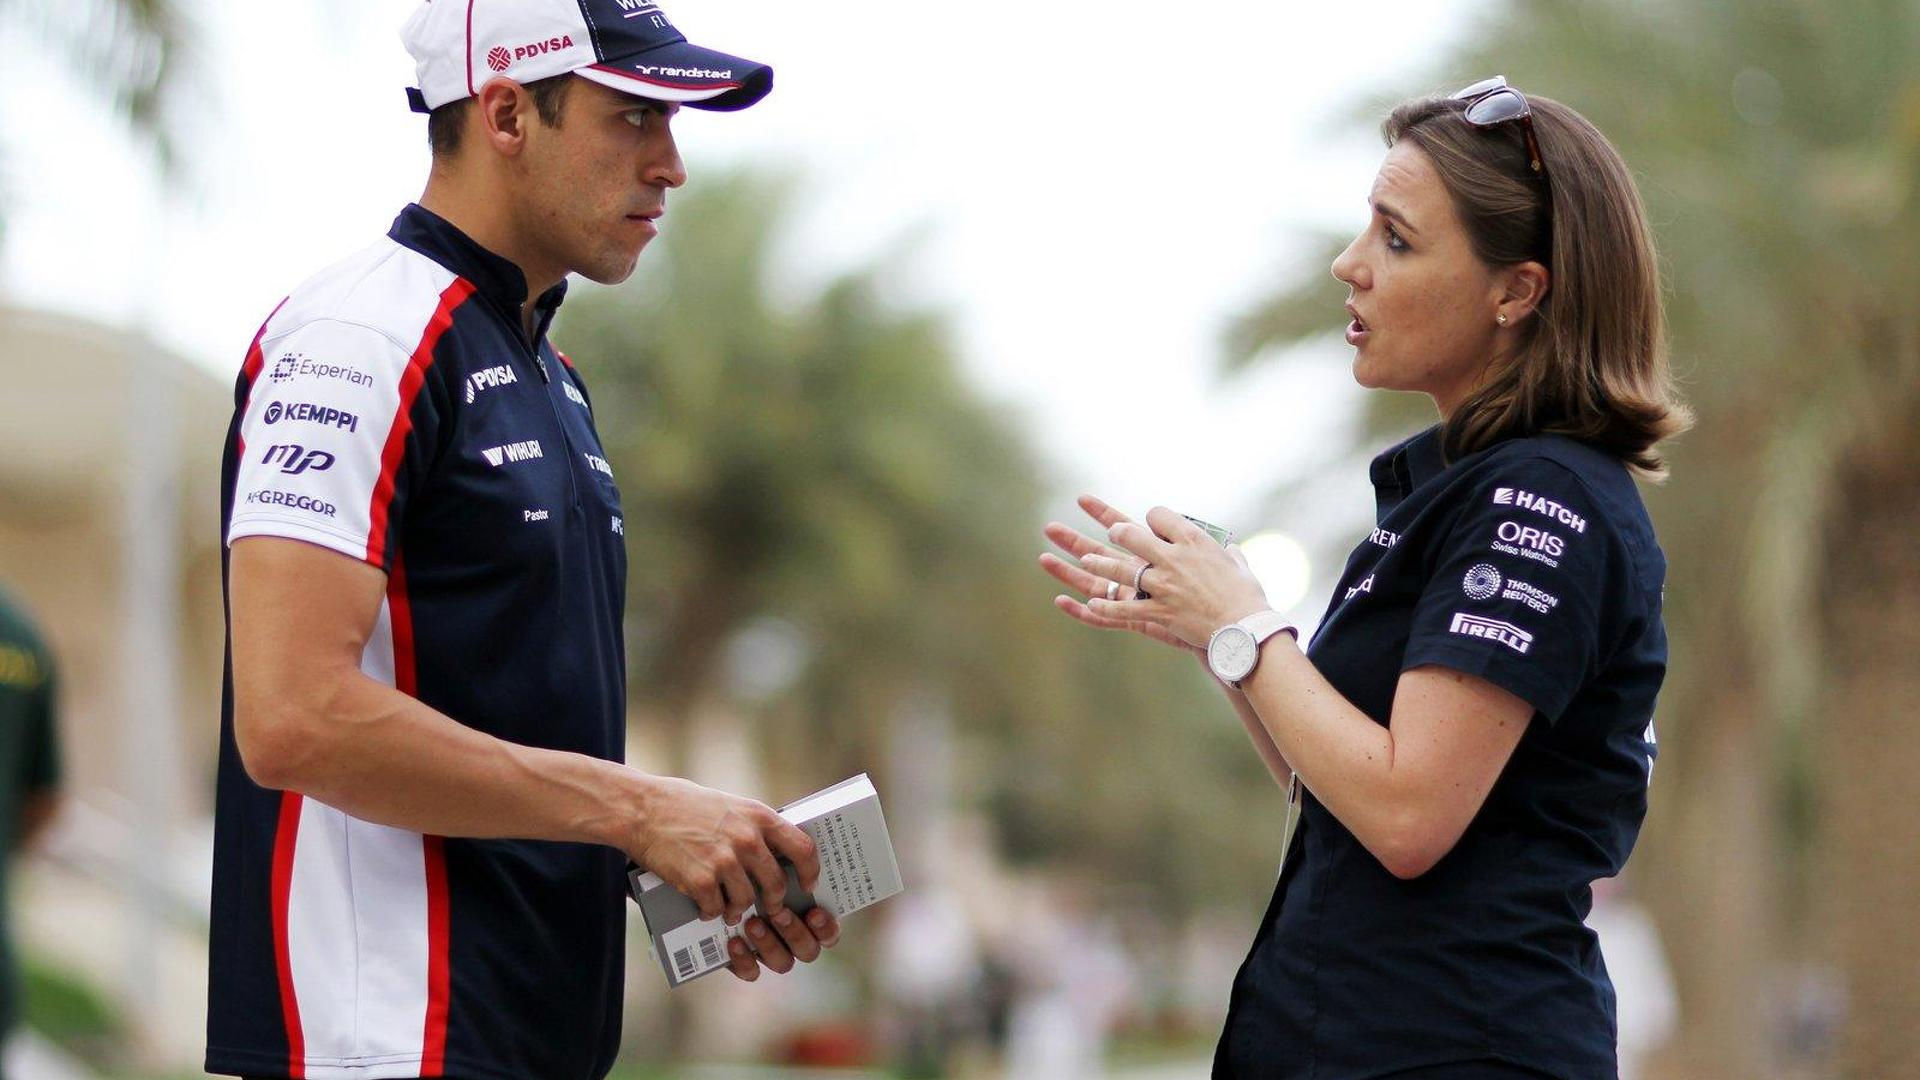 Williams 'committed' to Maldonado amid turmoil